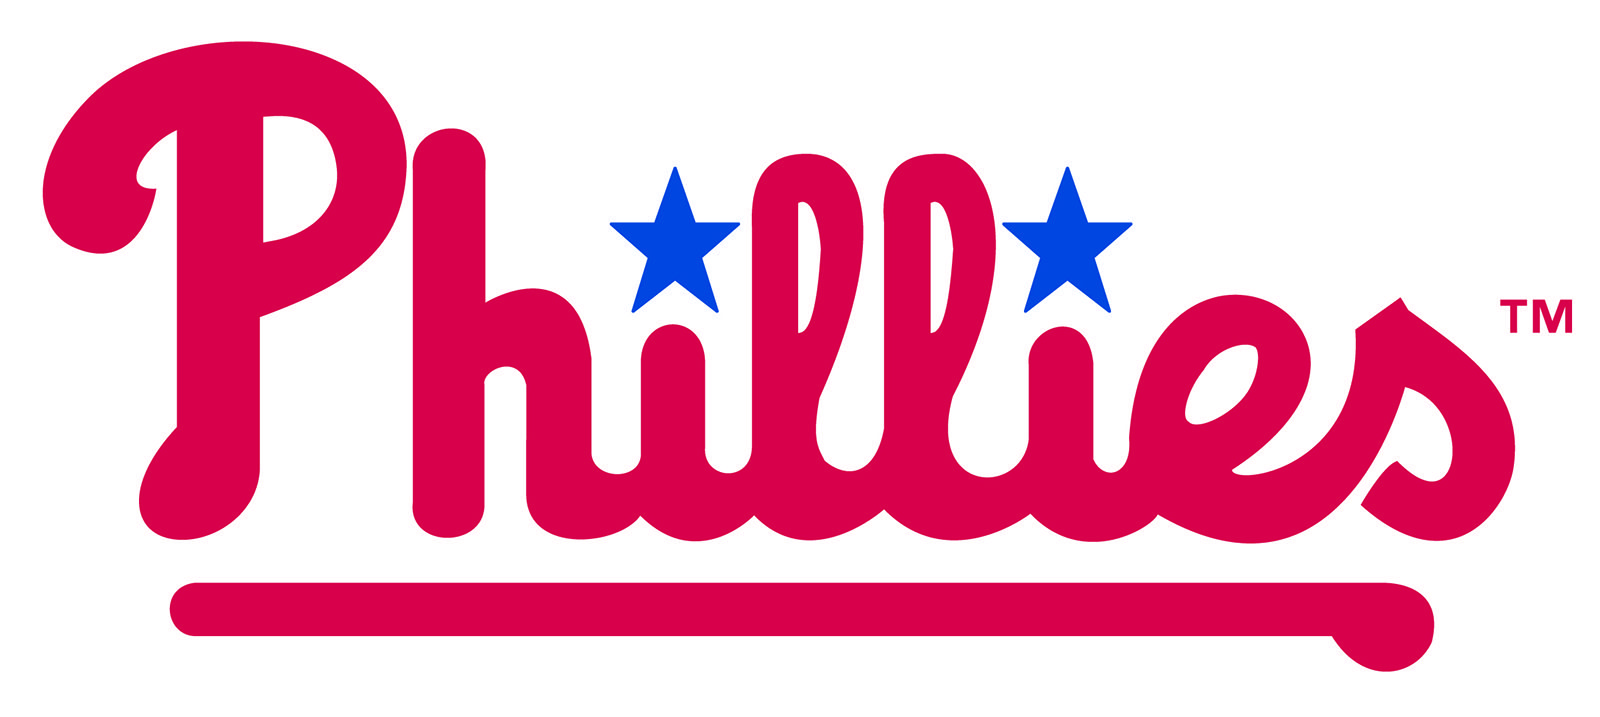 font phillies logo all logos world pinterest logos spring rh pinterest com phillies blunt logo font Retro Phillies Logo